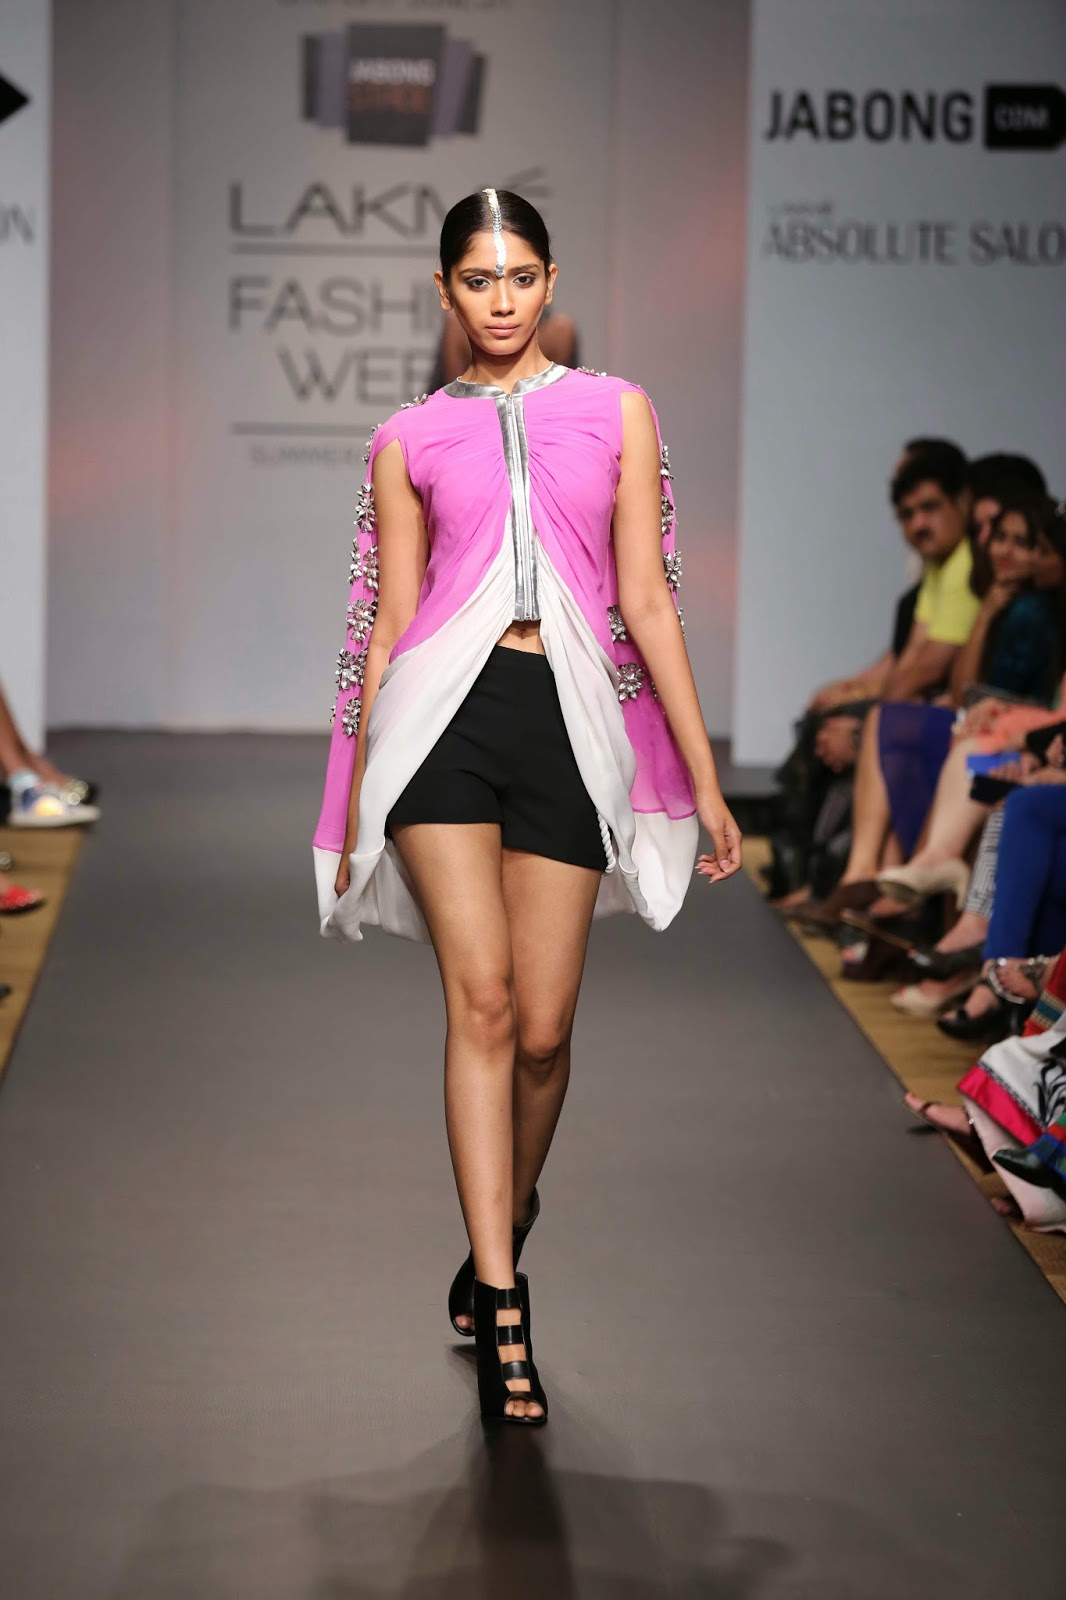 Urvashi Joneja's collection of high end casual and evening wear was a decadent display of all things feminine and feisty, at Jabong Stage during Lakmé Fashion Week Summer/Resort 2014. The designer stuck to a monochrome palette broken by pops of colours such as chalk purple and muted orange.